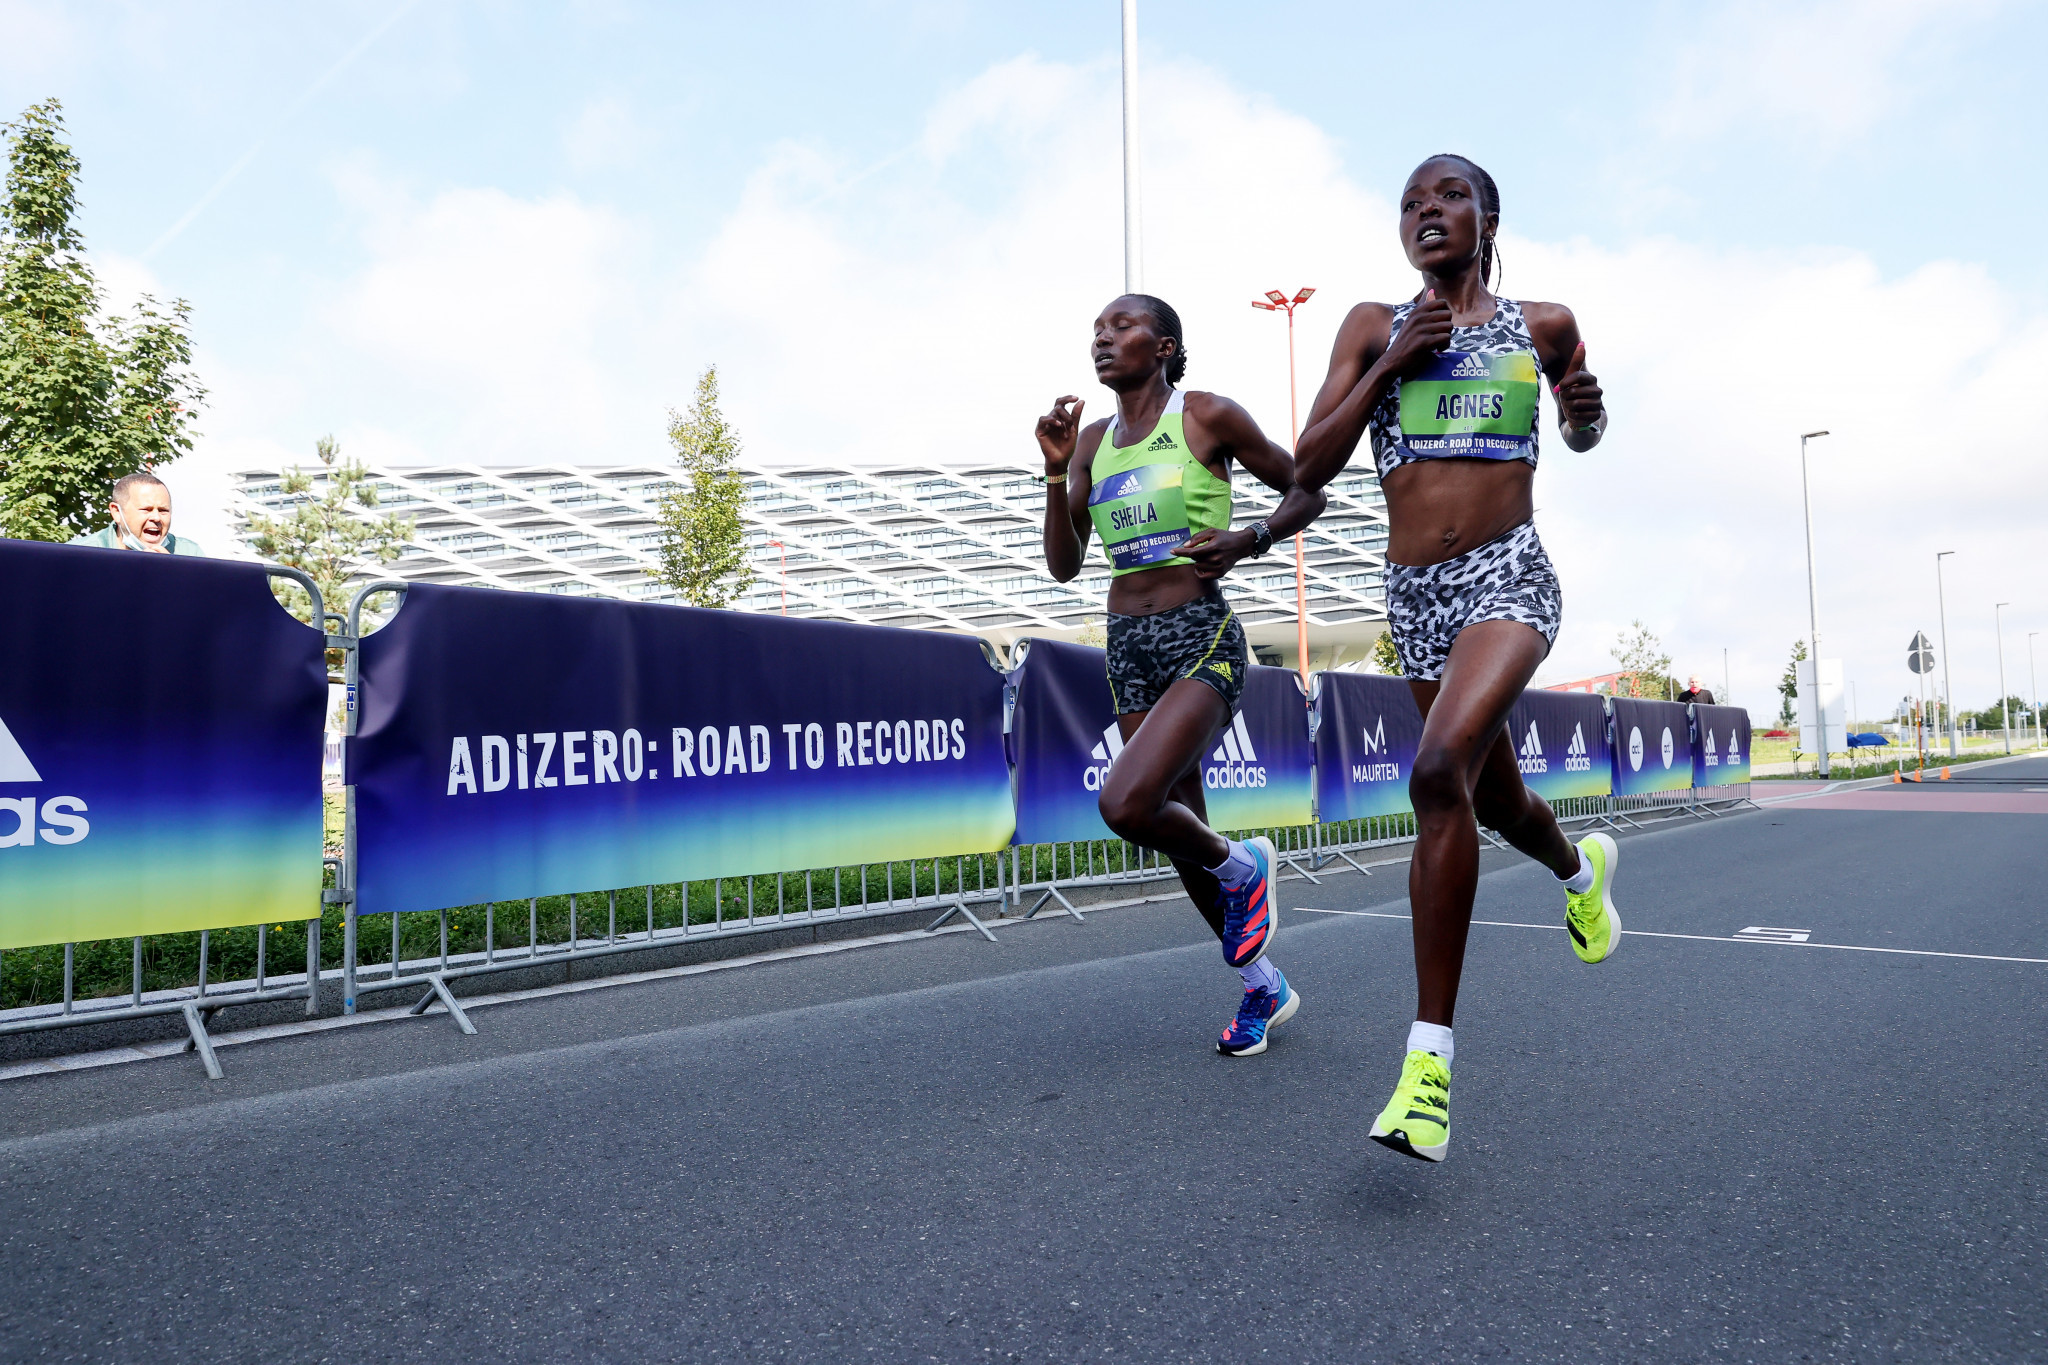 Teferi and Tirop shatter 5km and 10km world records